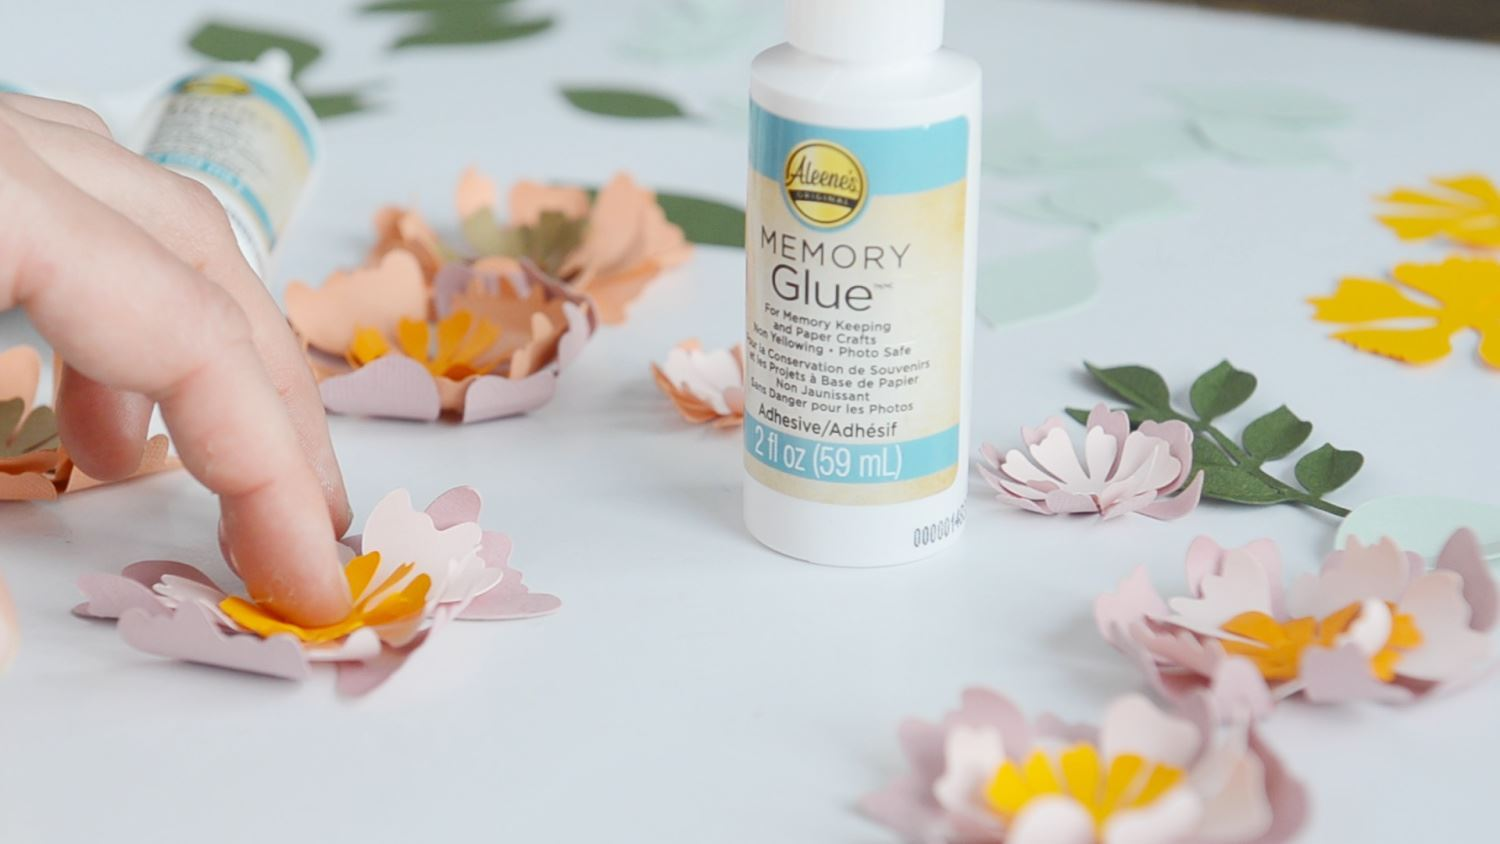 Continue gluing flower layers